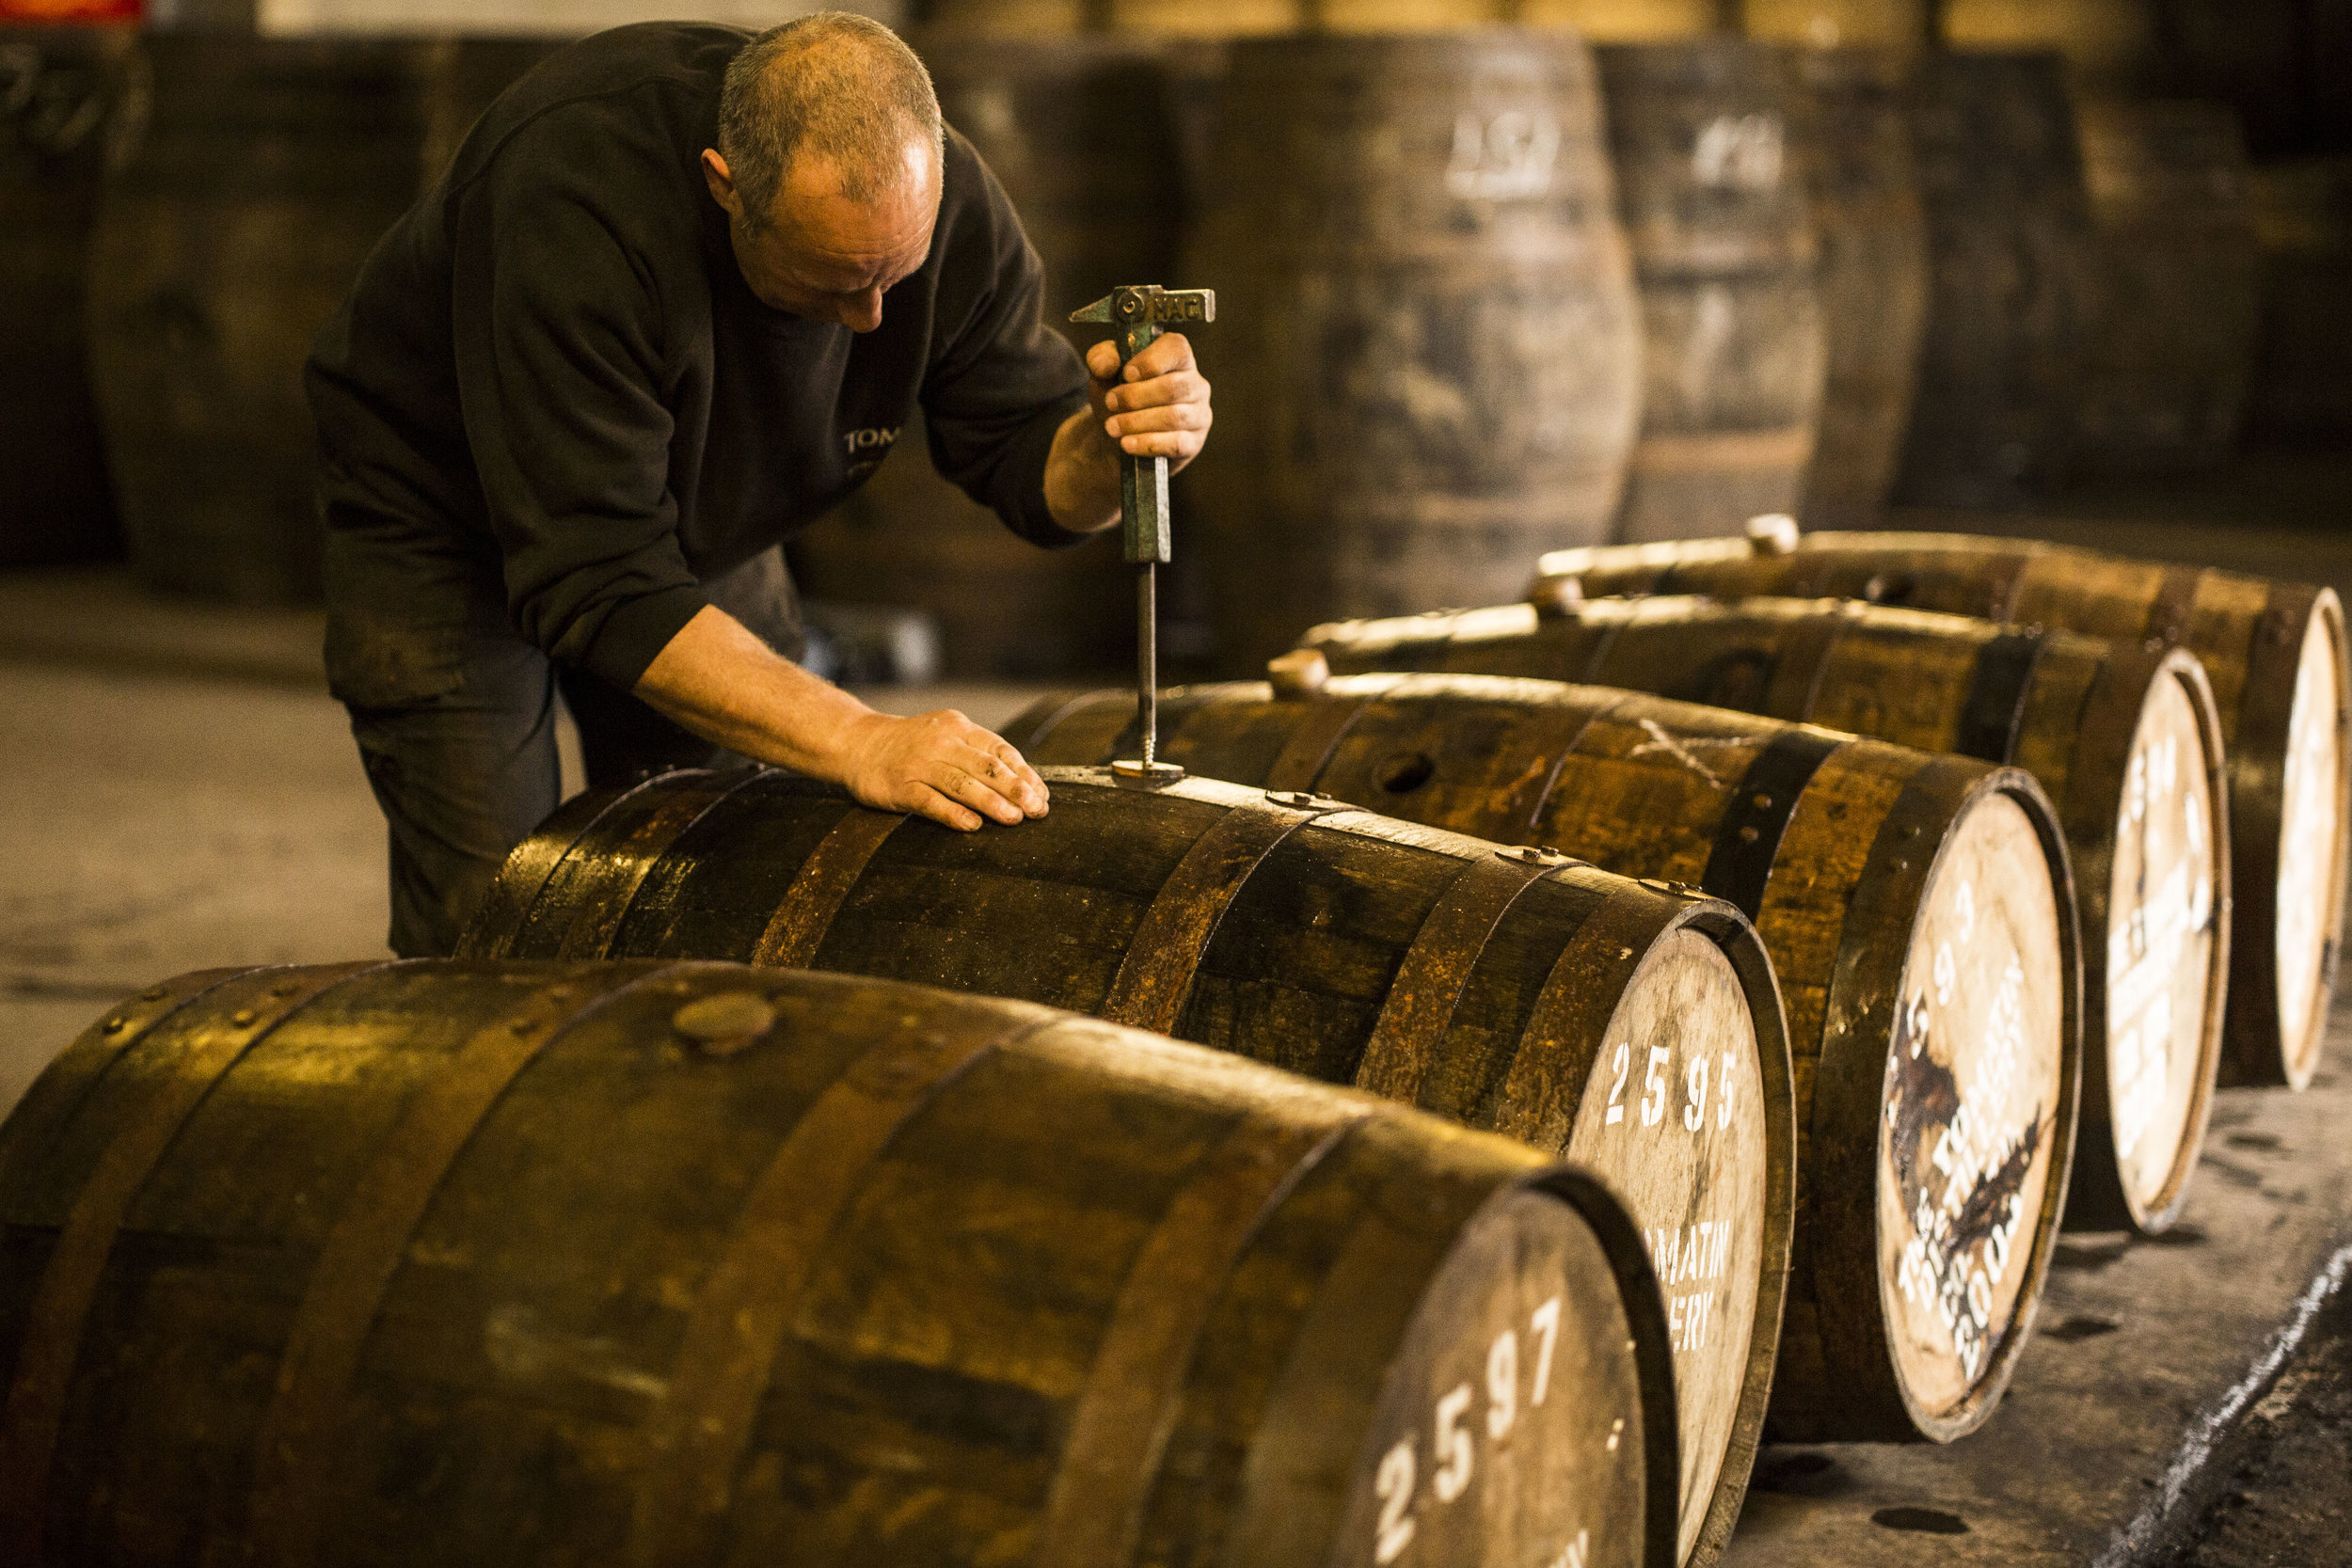 TOUR TIMES 11.40am 3.20pm Friday 17th of May   Join our Stillman, David Milne, for a bespoke tour of Tomatin Distillery where he will offer a unique insight into what exactly makes Tomatin single malt. Enjoy unrivalled access to all aspects of whisky production from malt to maturation, finished with a working cooperage demonstration. Taste our surprisingly sweet & mellow new make spirit & a selection of four Tomatin Single Malt expressions throughout this tour. Allow at least 1hr 30minutes. This tour includes the optional tasting of our new make spirit as well as whiskies;  Tomatin 12 Year  Old,  Tomatin Cask Strength ,  Tomatin 14 Year Old , &  Tomatin 18 Year Old.  Over 18s only, £25.  Contact  TOMATIN VISITOR CENTRE  to book.